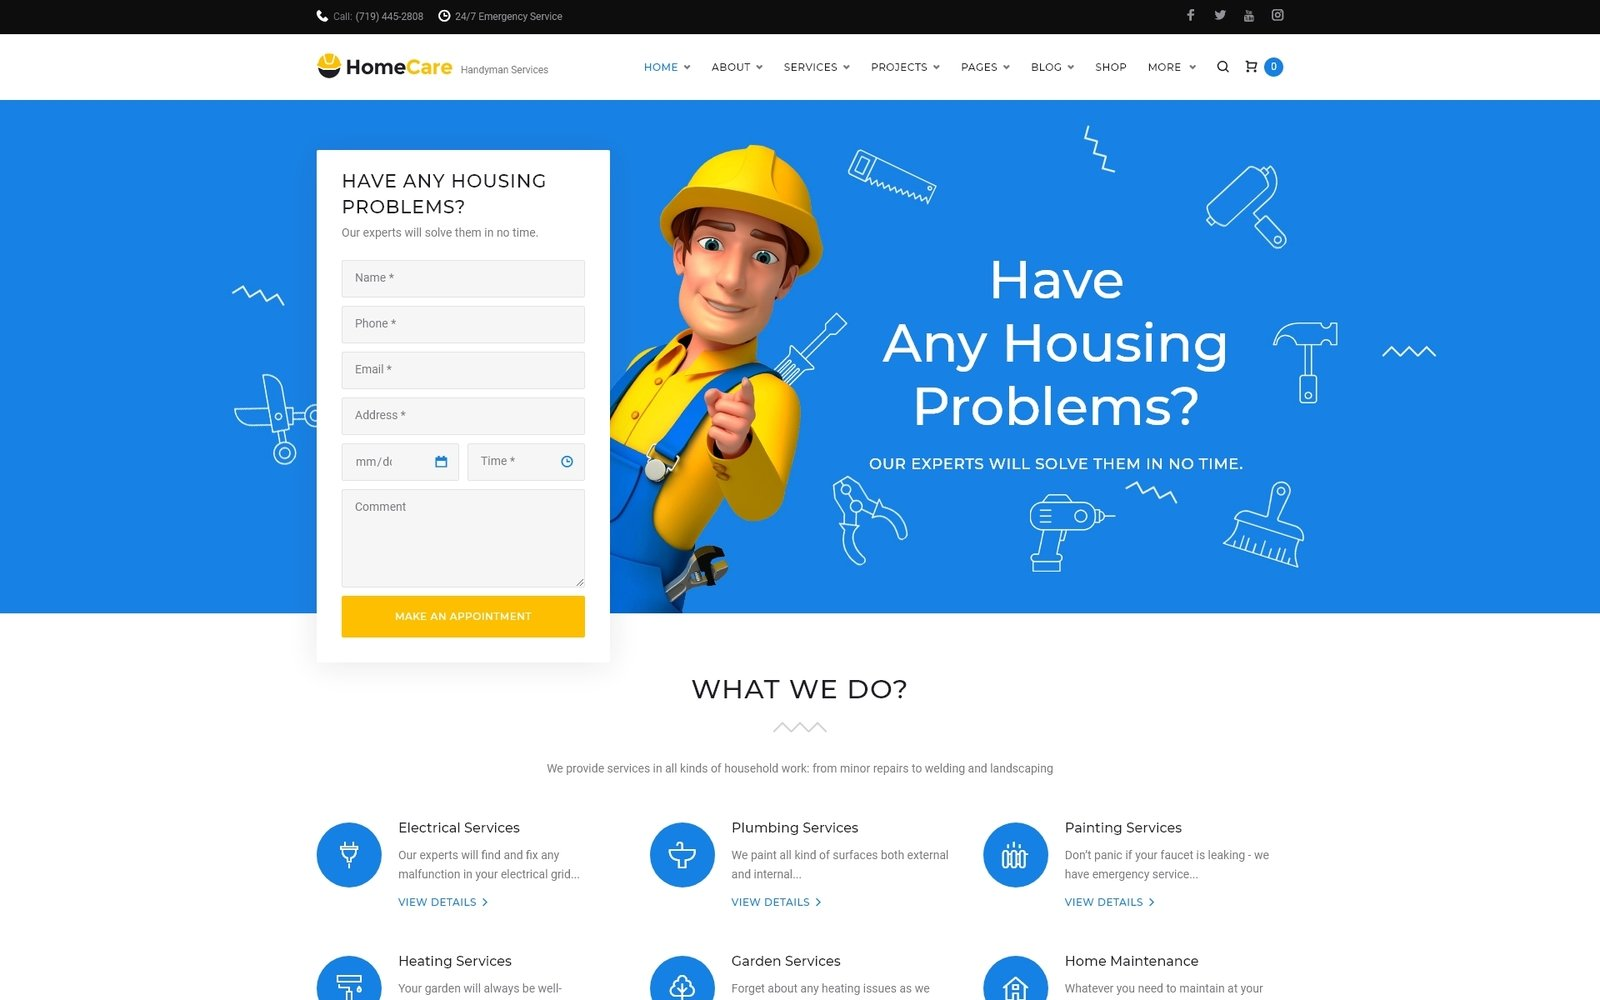 HomeCare - Handyman Services Responsive WordPress Theme